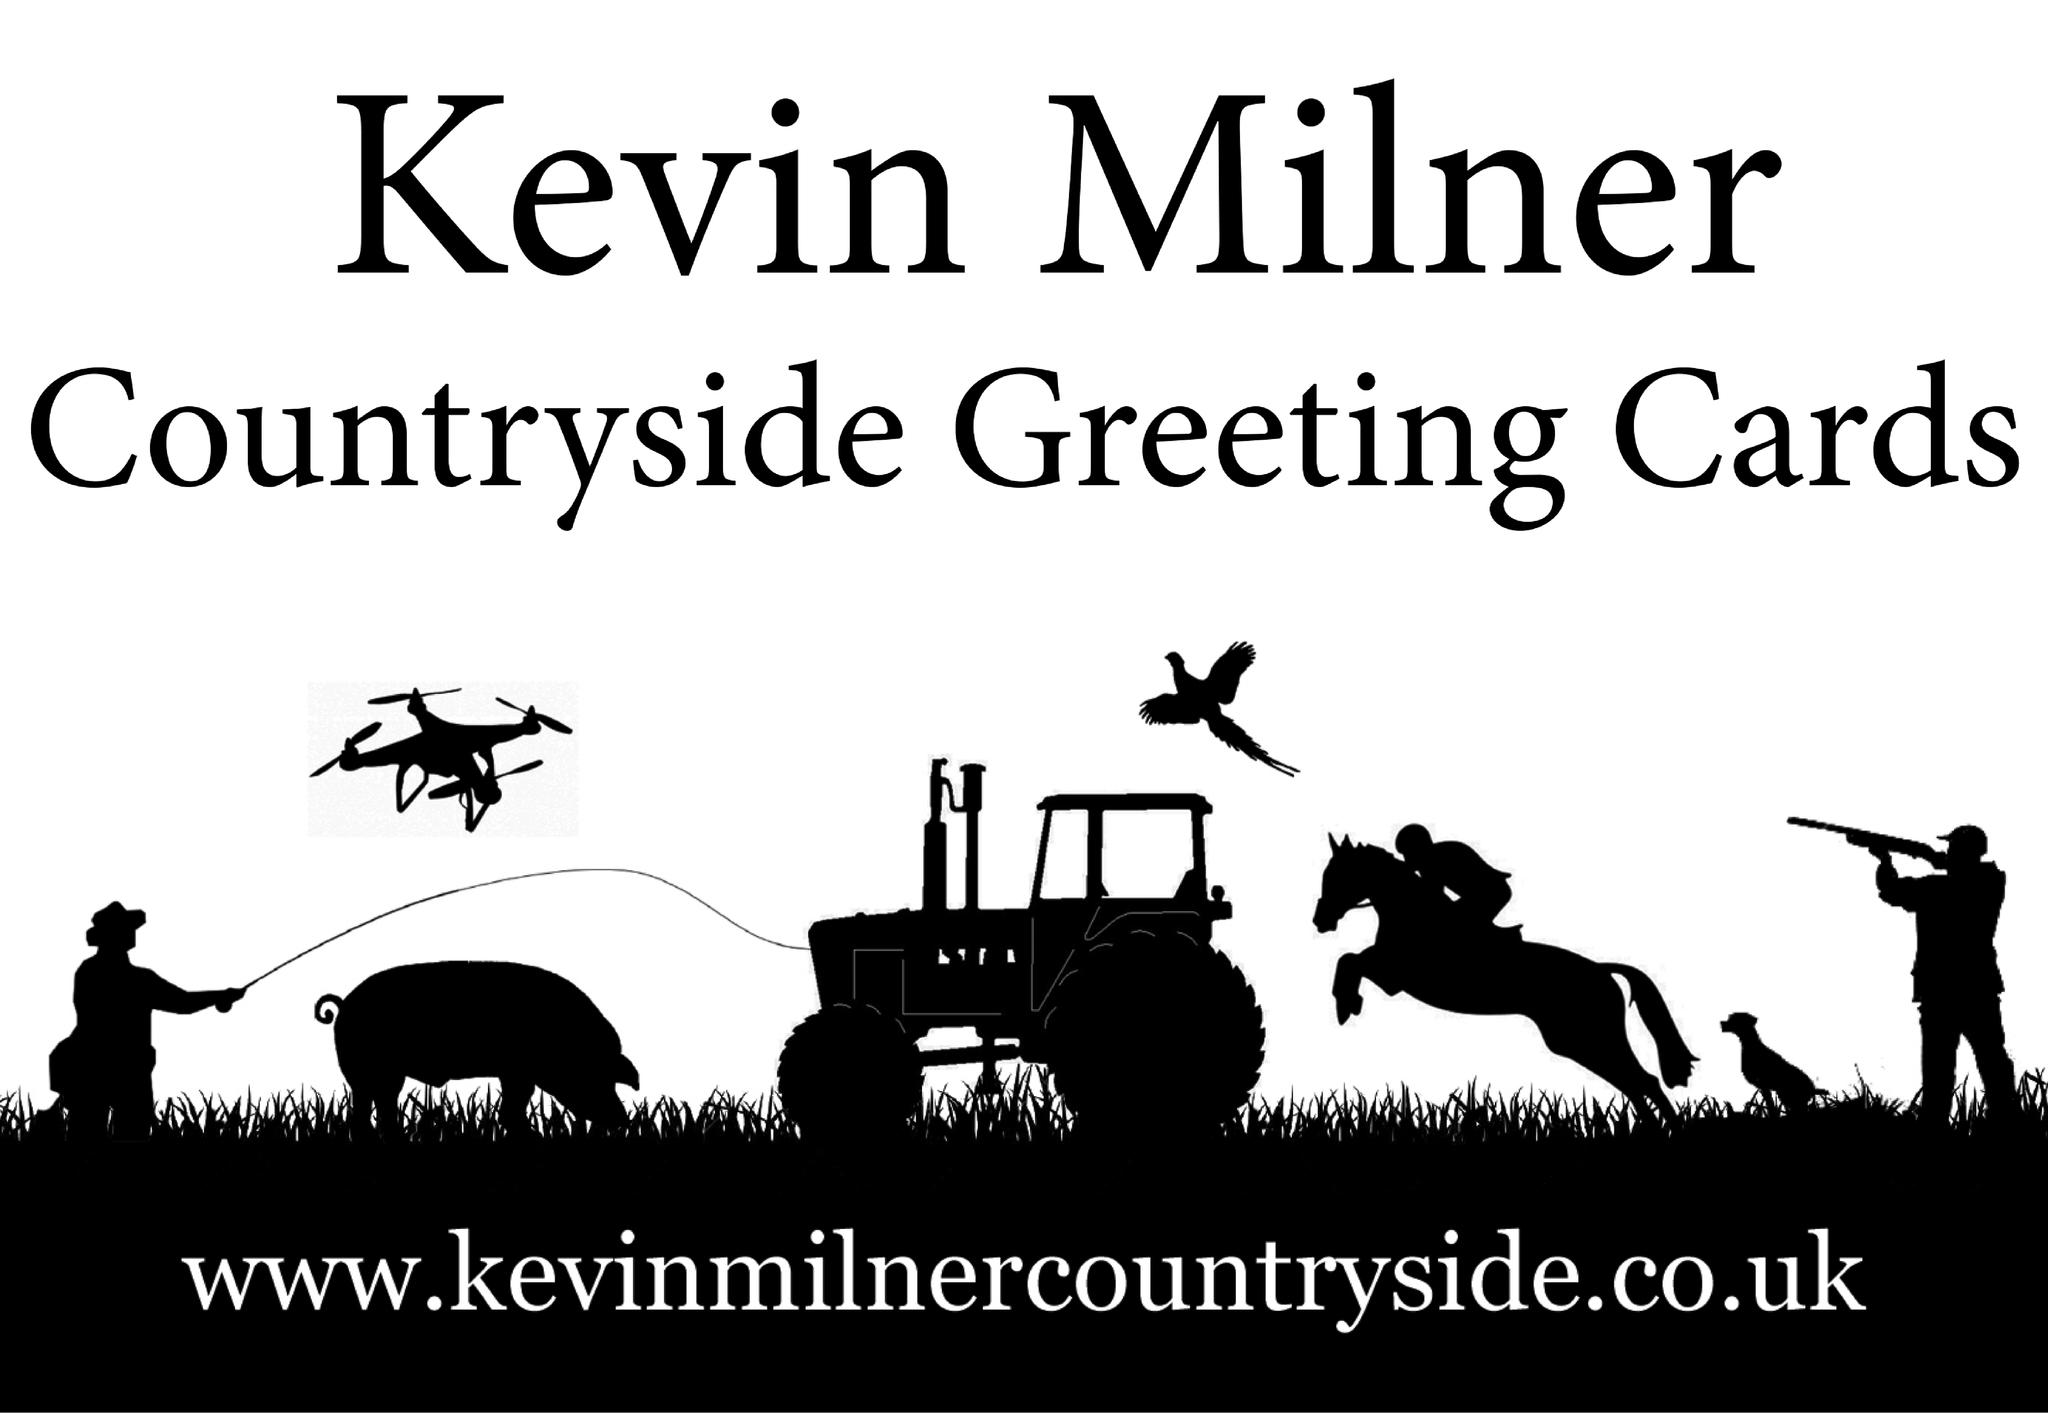 Kevin Milner Countryside Greeting Cards